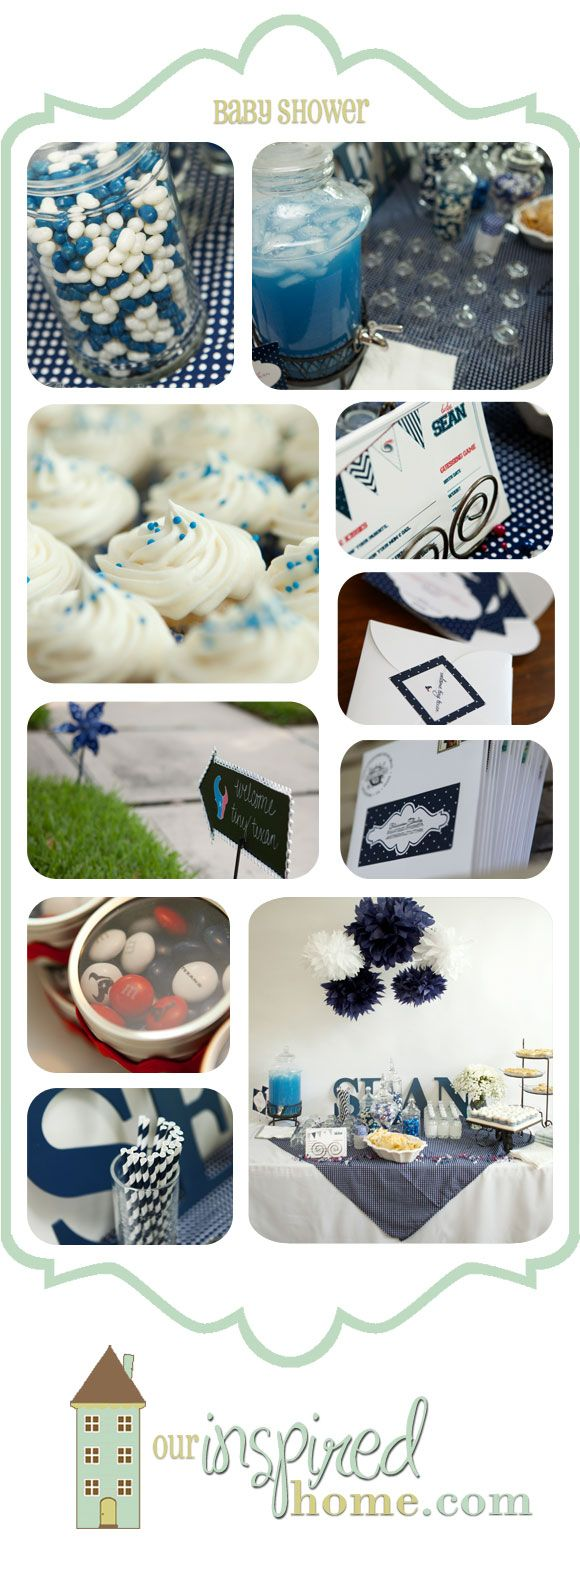 houston texans nfl football baby shower